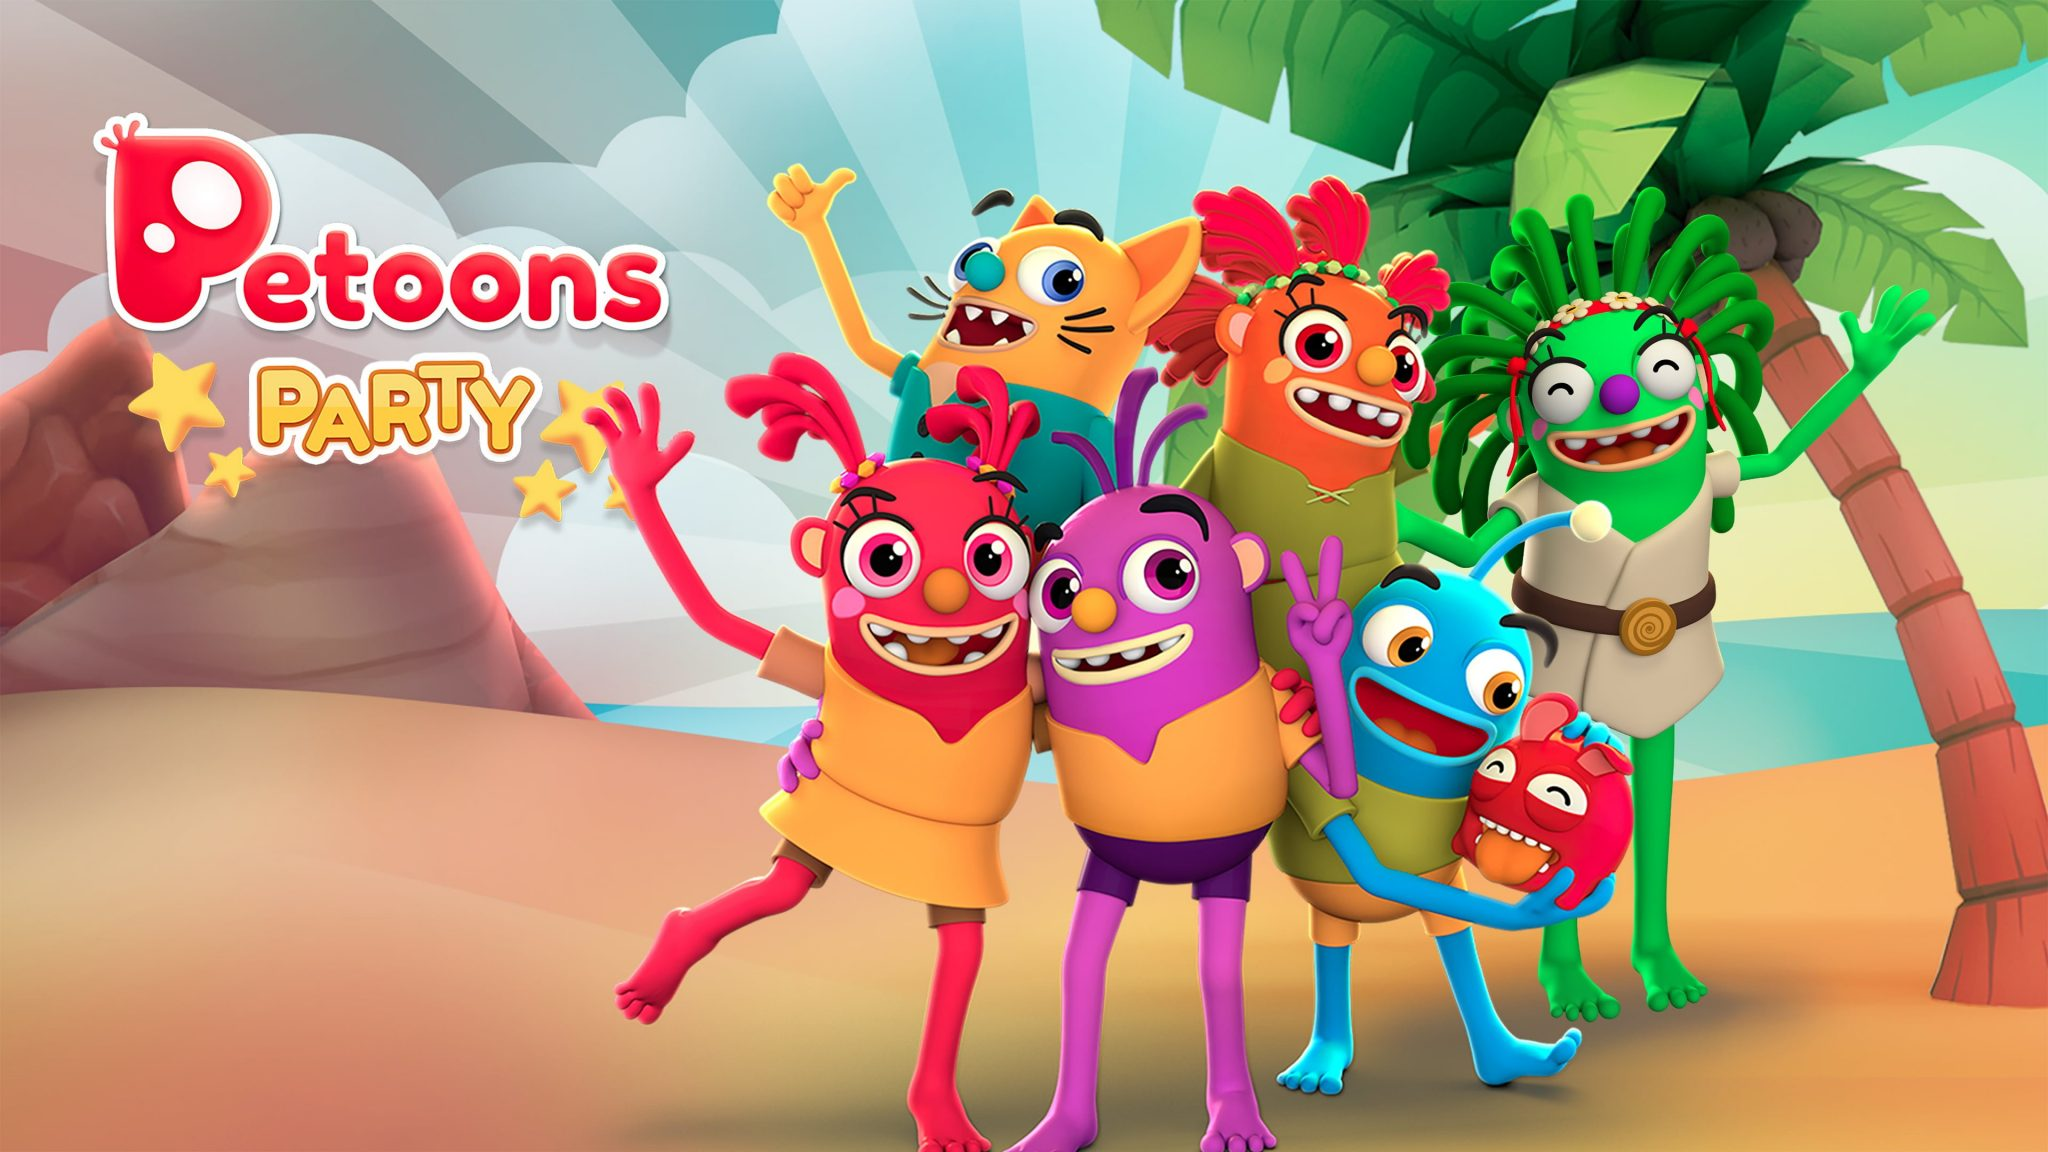 Petoons Party Xbox One Version Full Game Free Download